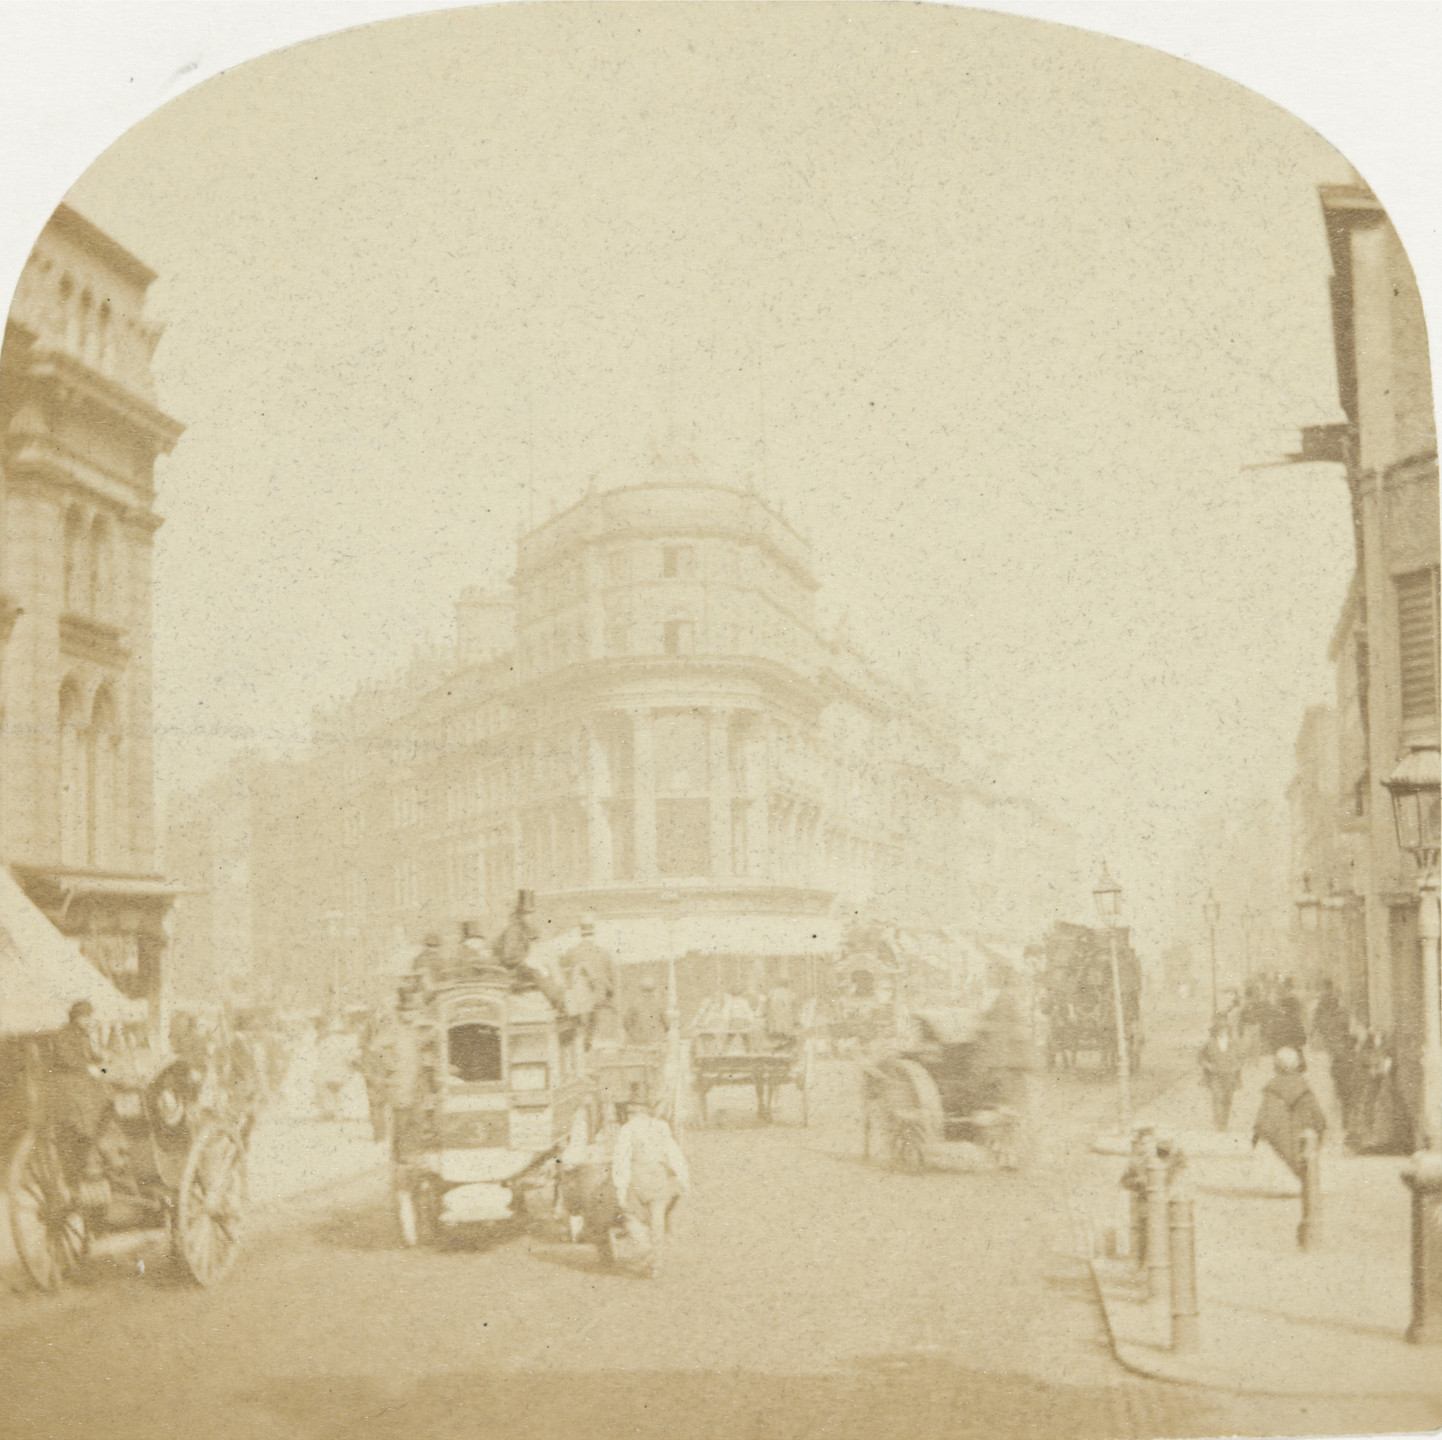 Roger Fenton. London, Picadilly. 1857